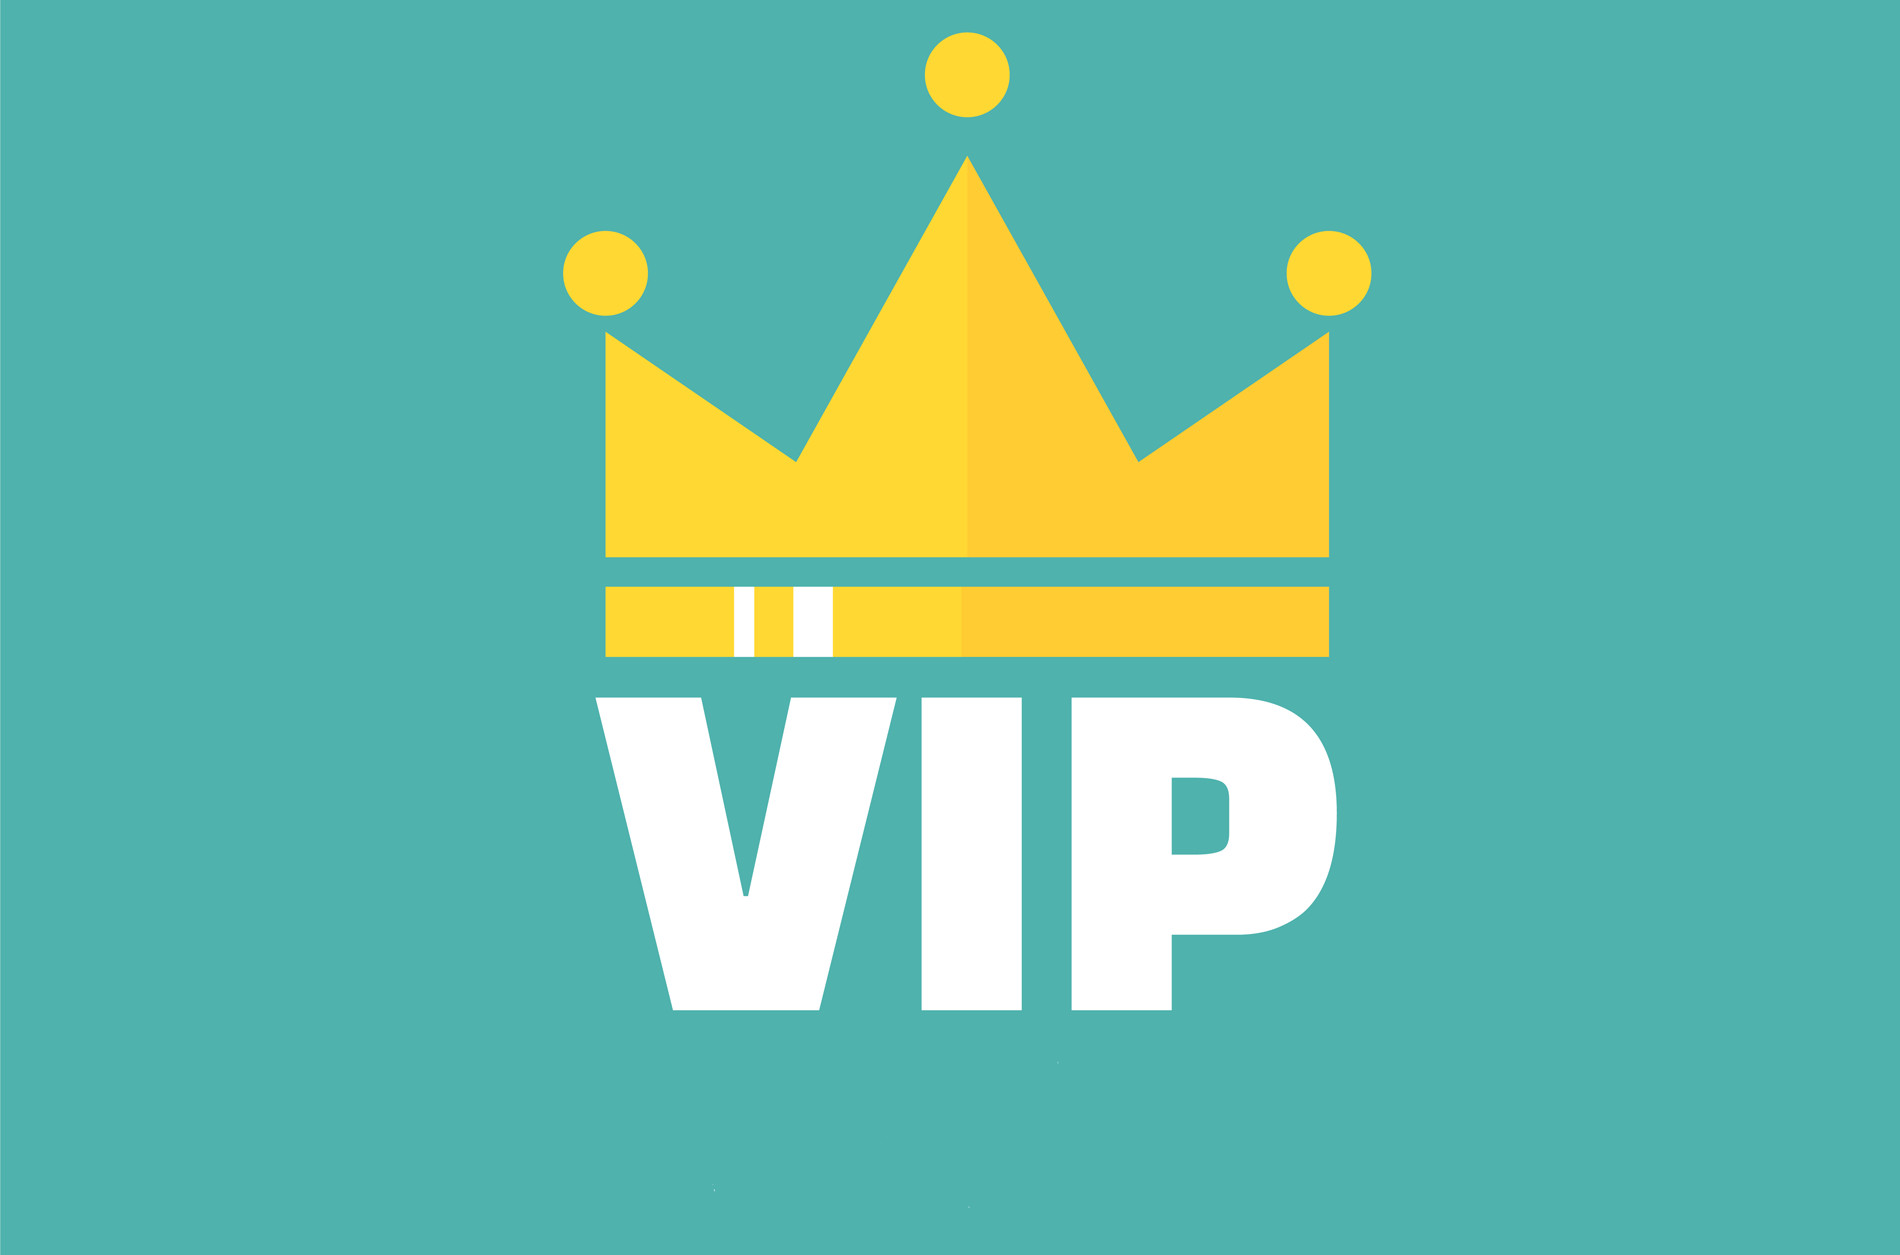 New VIP Personalization & Consulting Services can Help Dentists in Challenging Markets